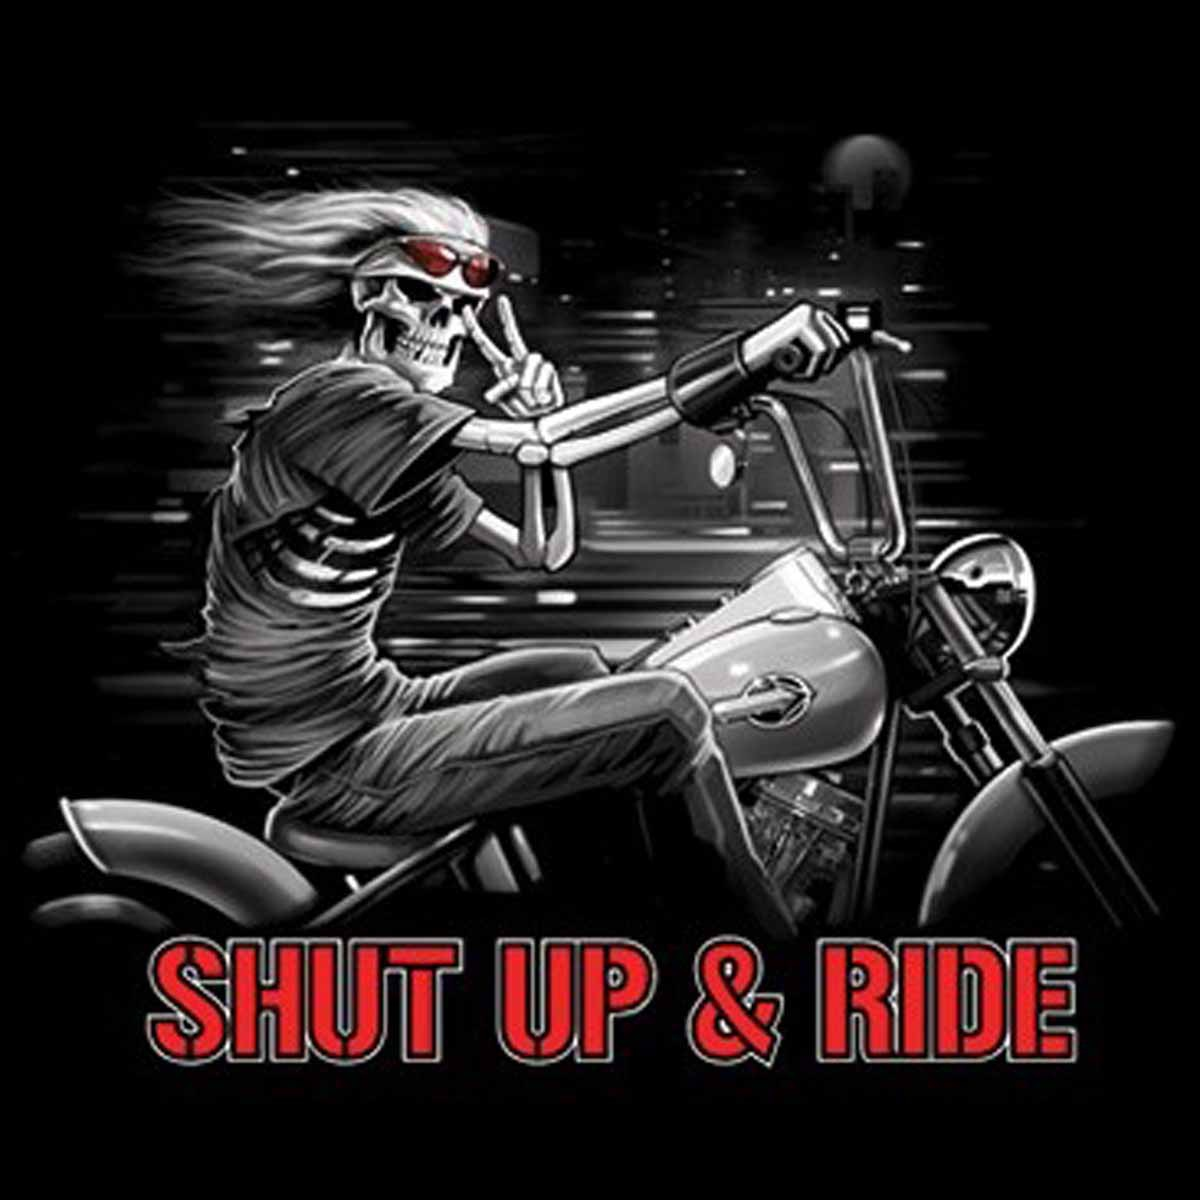 T-shirt HOMME manches courtes - Moto squelette - Shut up and ride - 8879 - noir